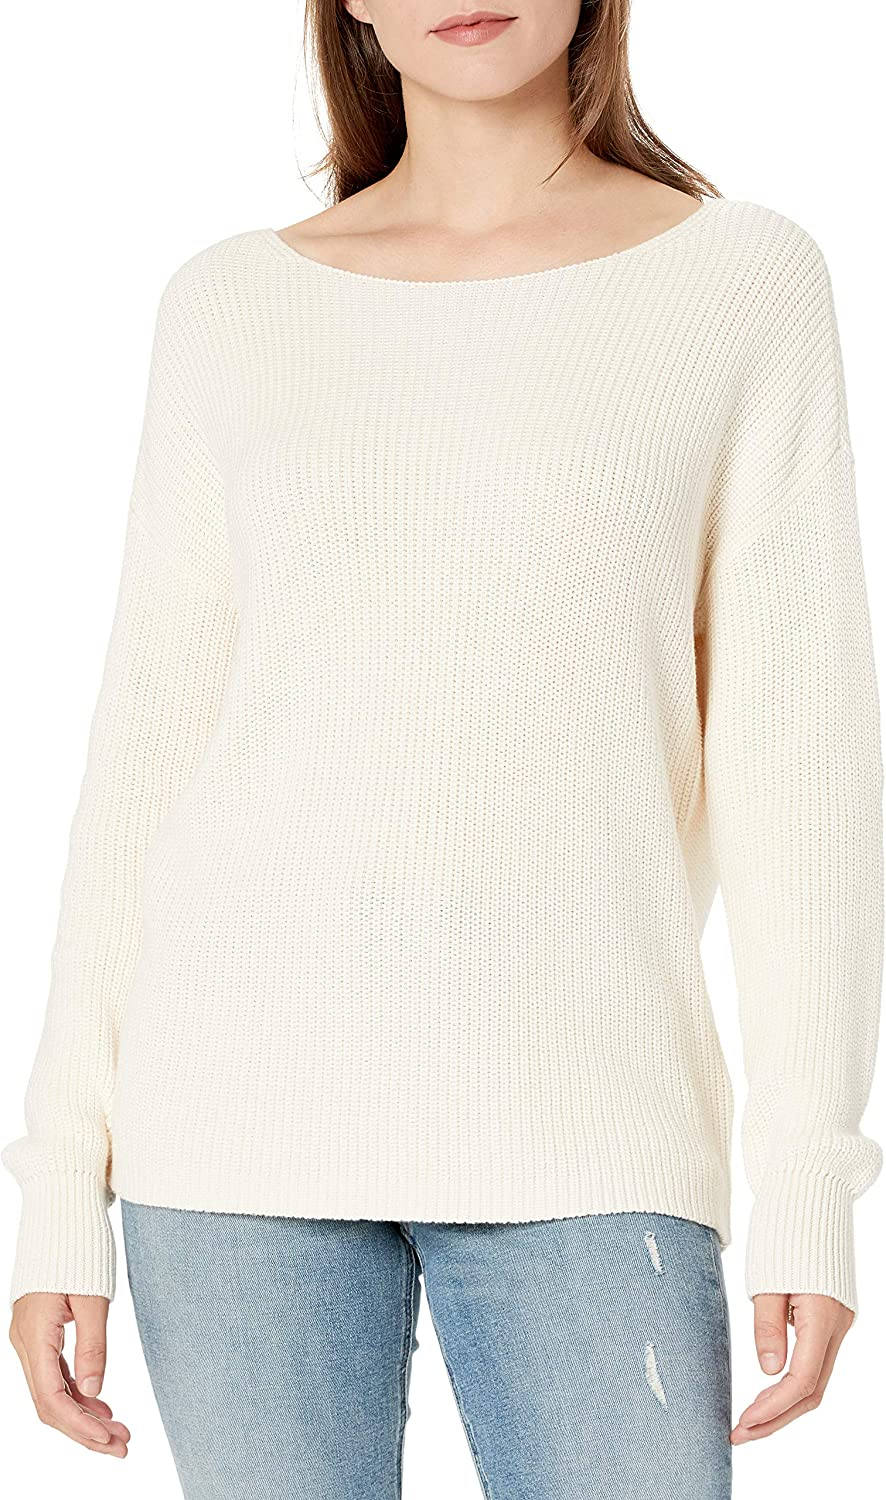 Amazon Brand - Goodthreads Women's Relaxed Fit Mineral Wash Ribbed Boatneck Pullover Sweater